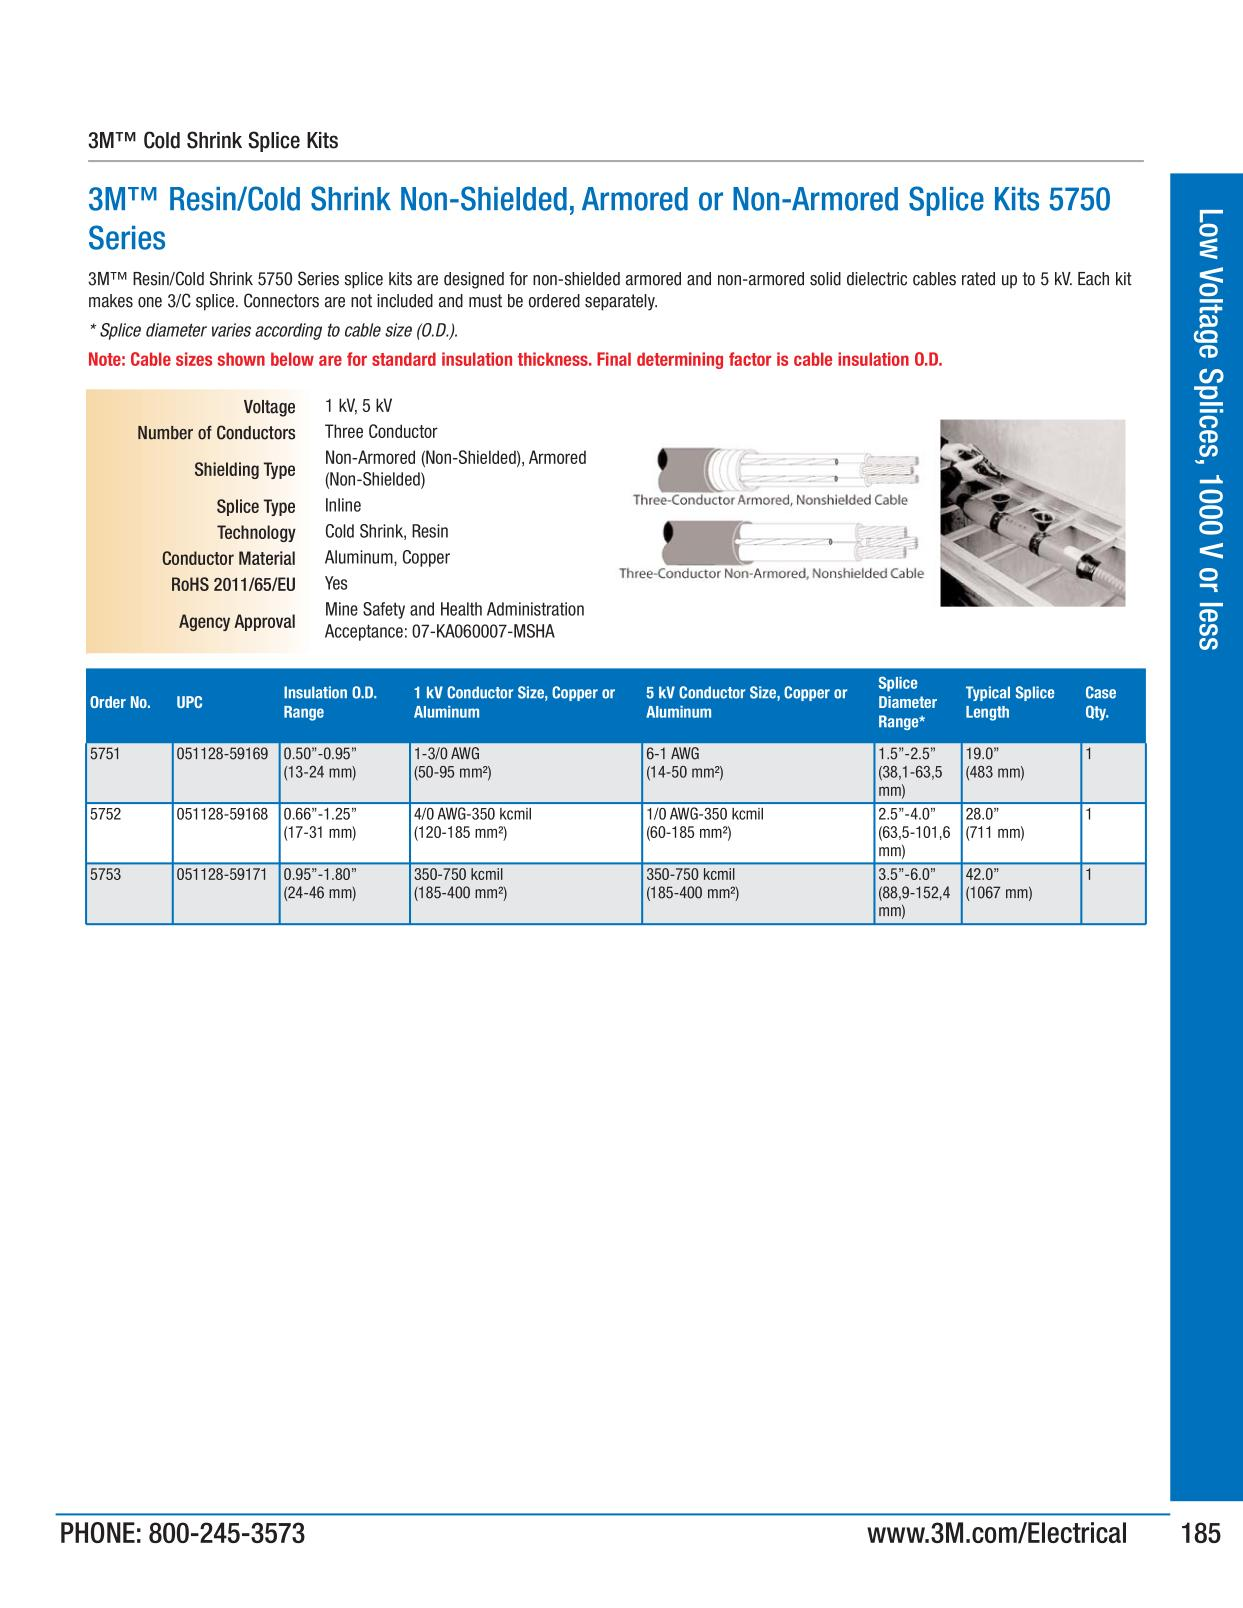 3m electrical products page 184 low voltage splices 1000 v or less keyboard keysfo Choice Image